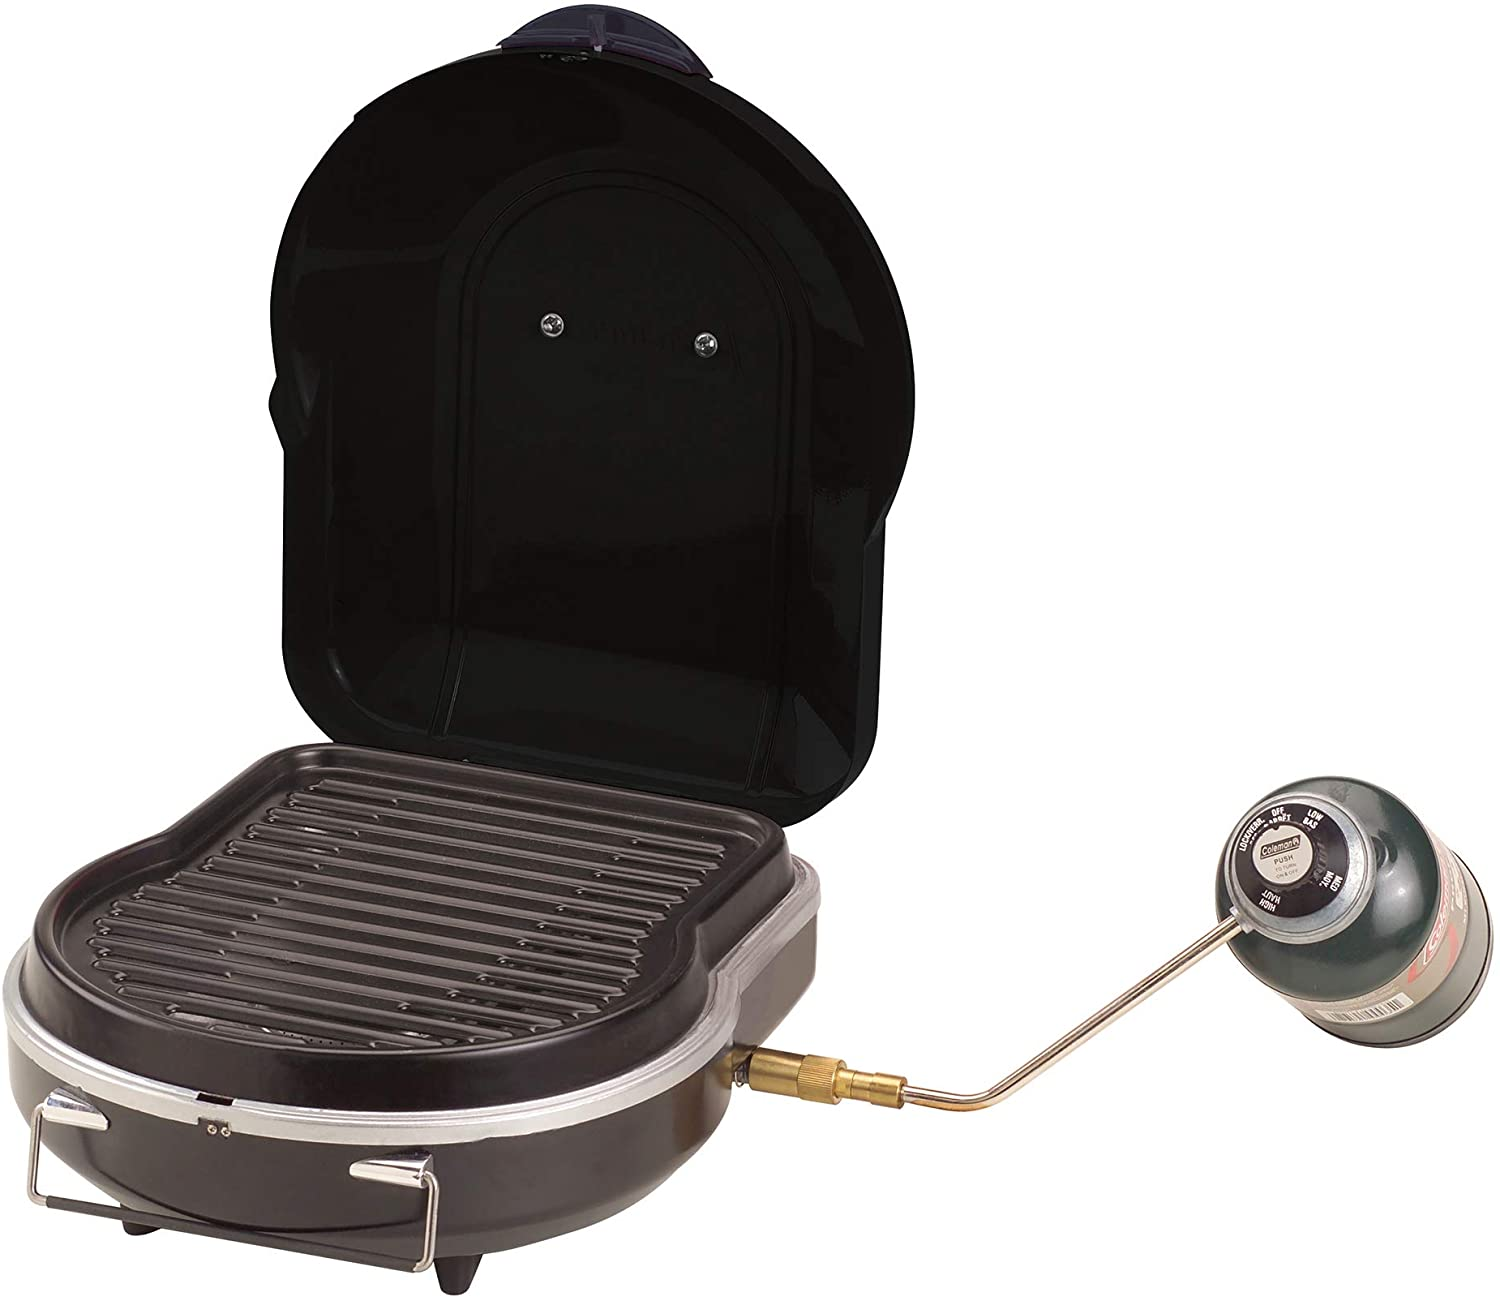 Image of a propane grill with lid open. A propane-filled canister attached to it.